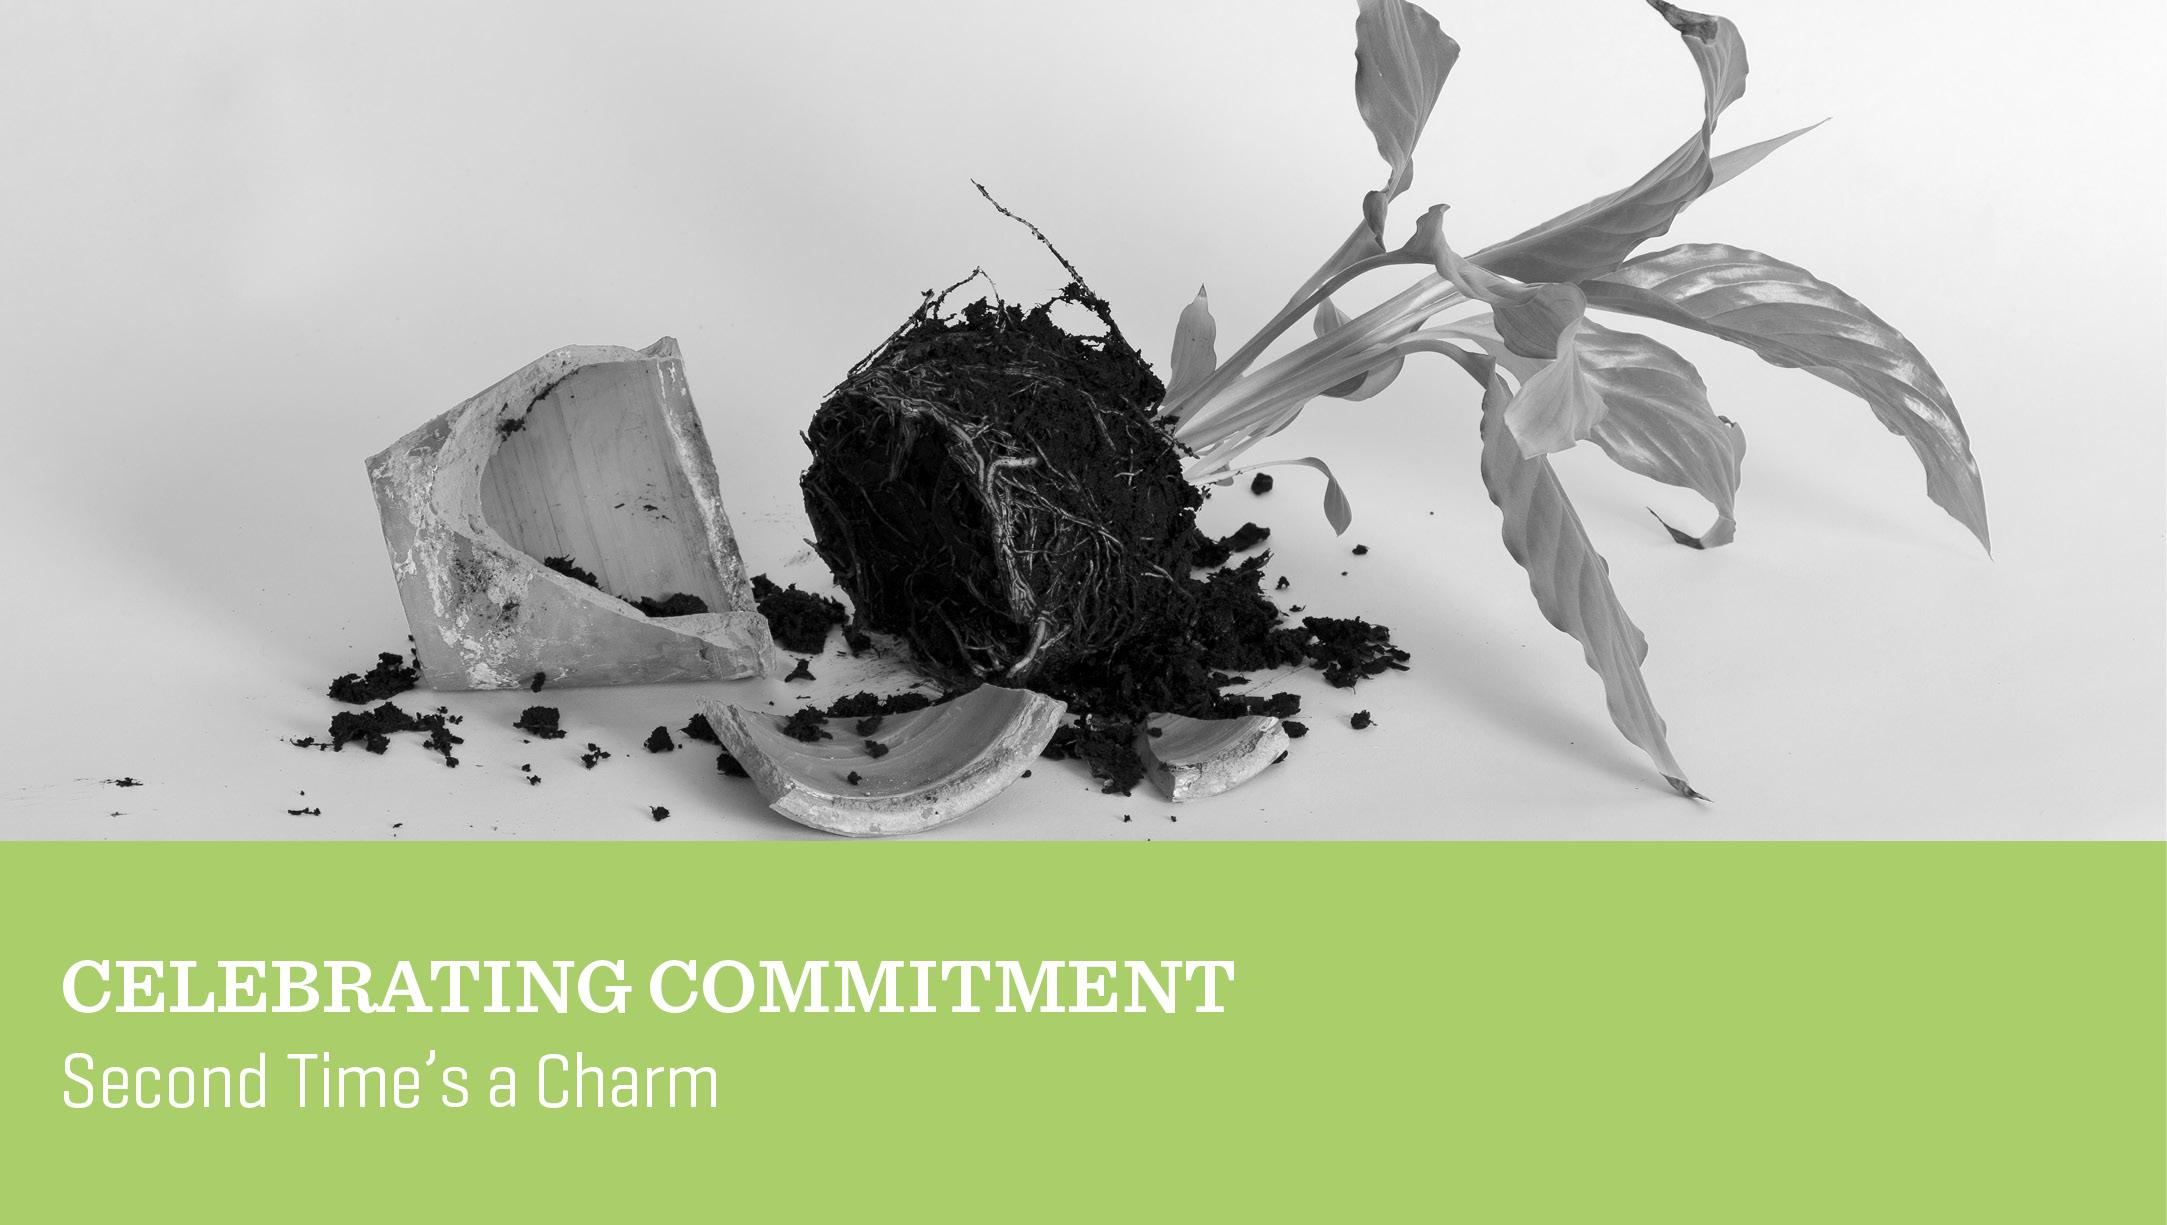 Celebrating Commitment